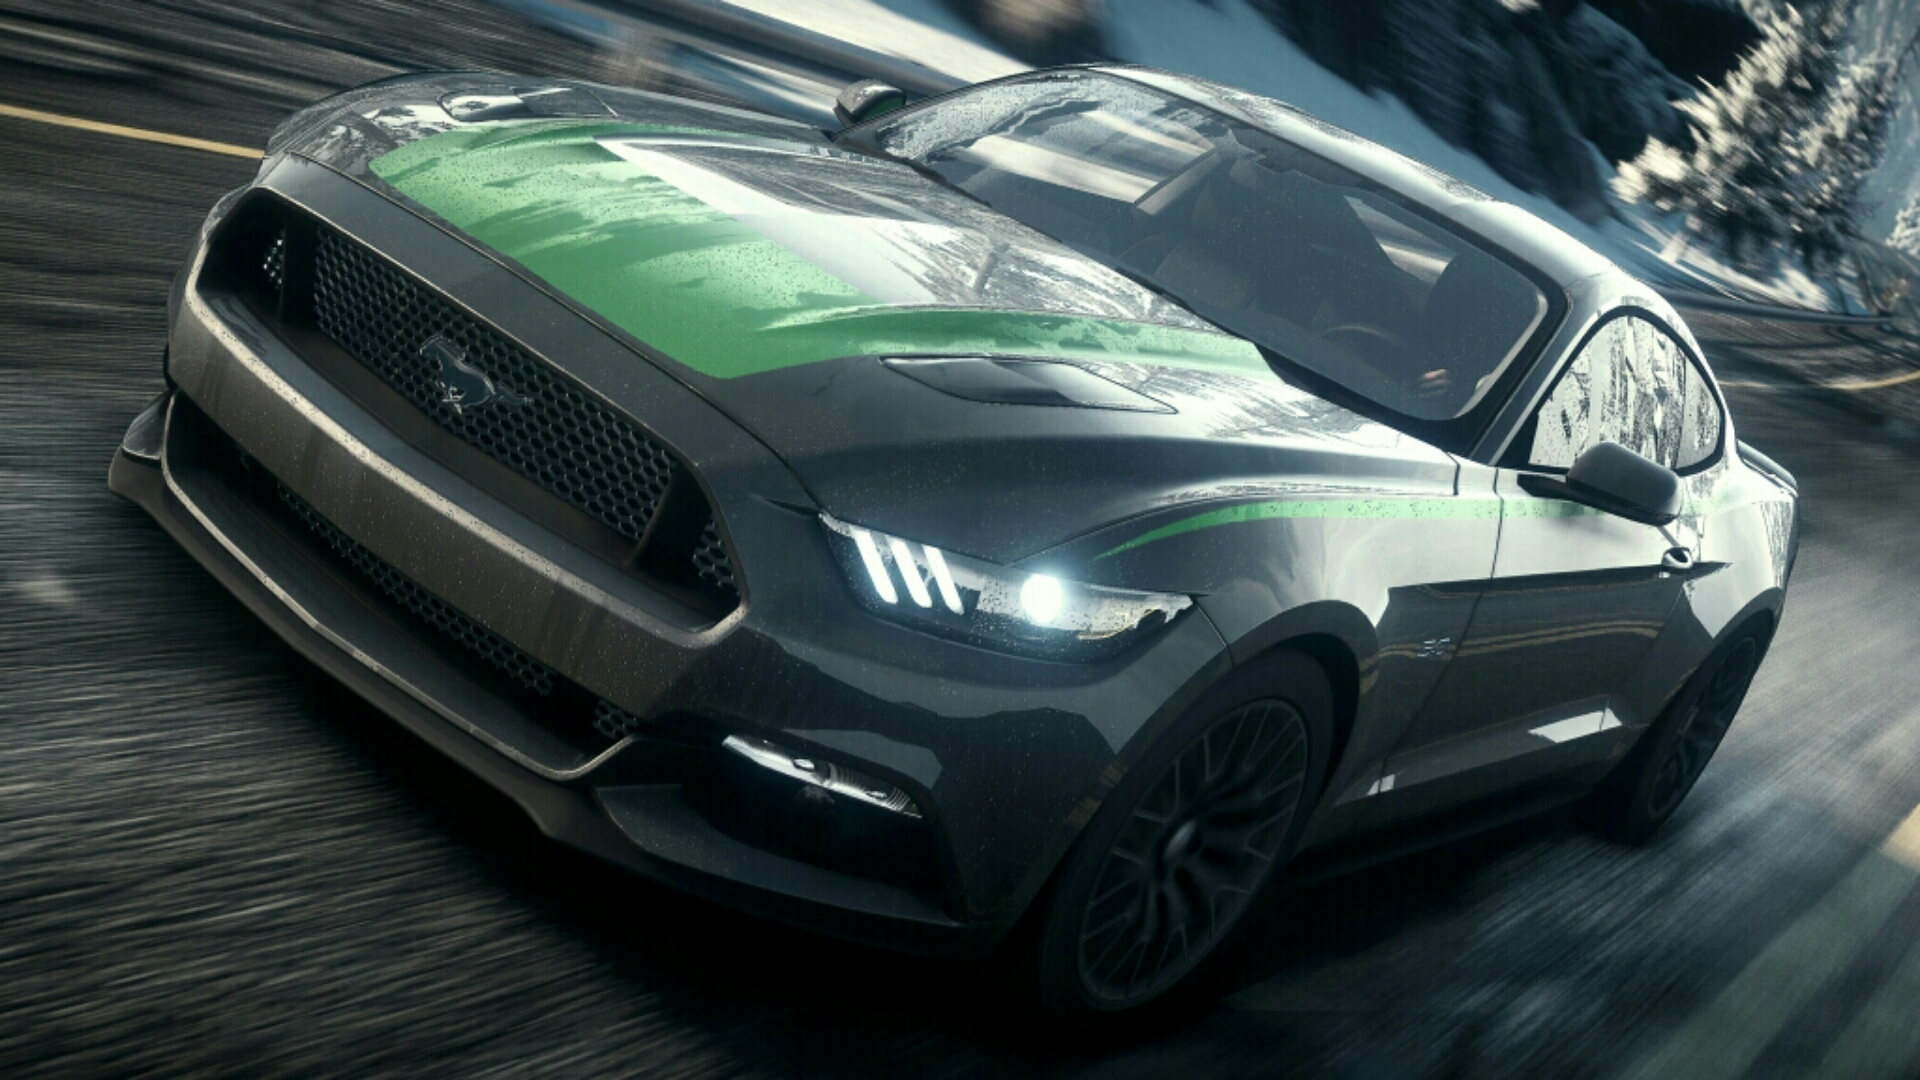 2015 Ford Mustang GT Wallpaper iBackgroundWallpaper 1920x1080